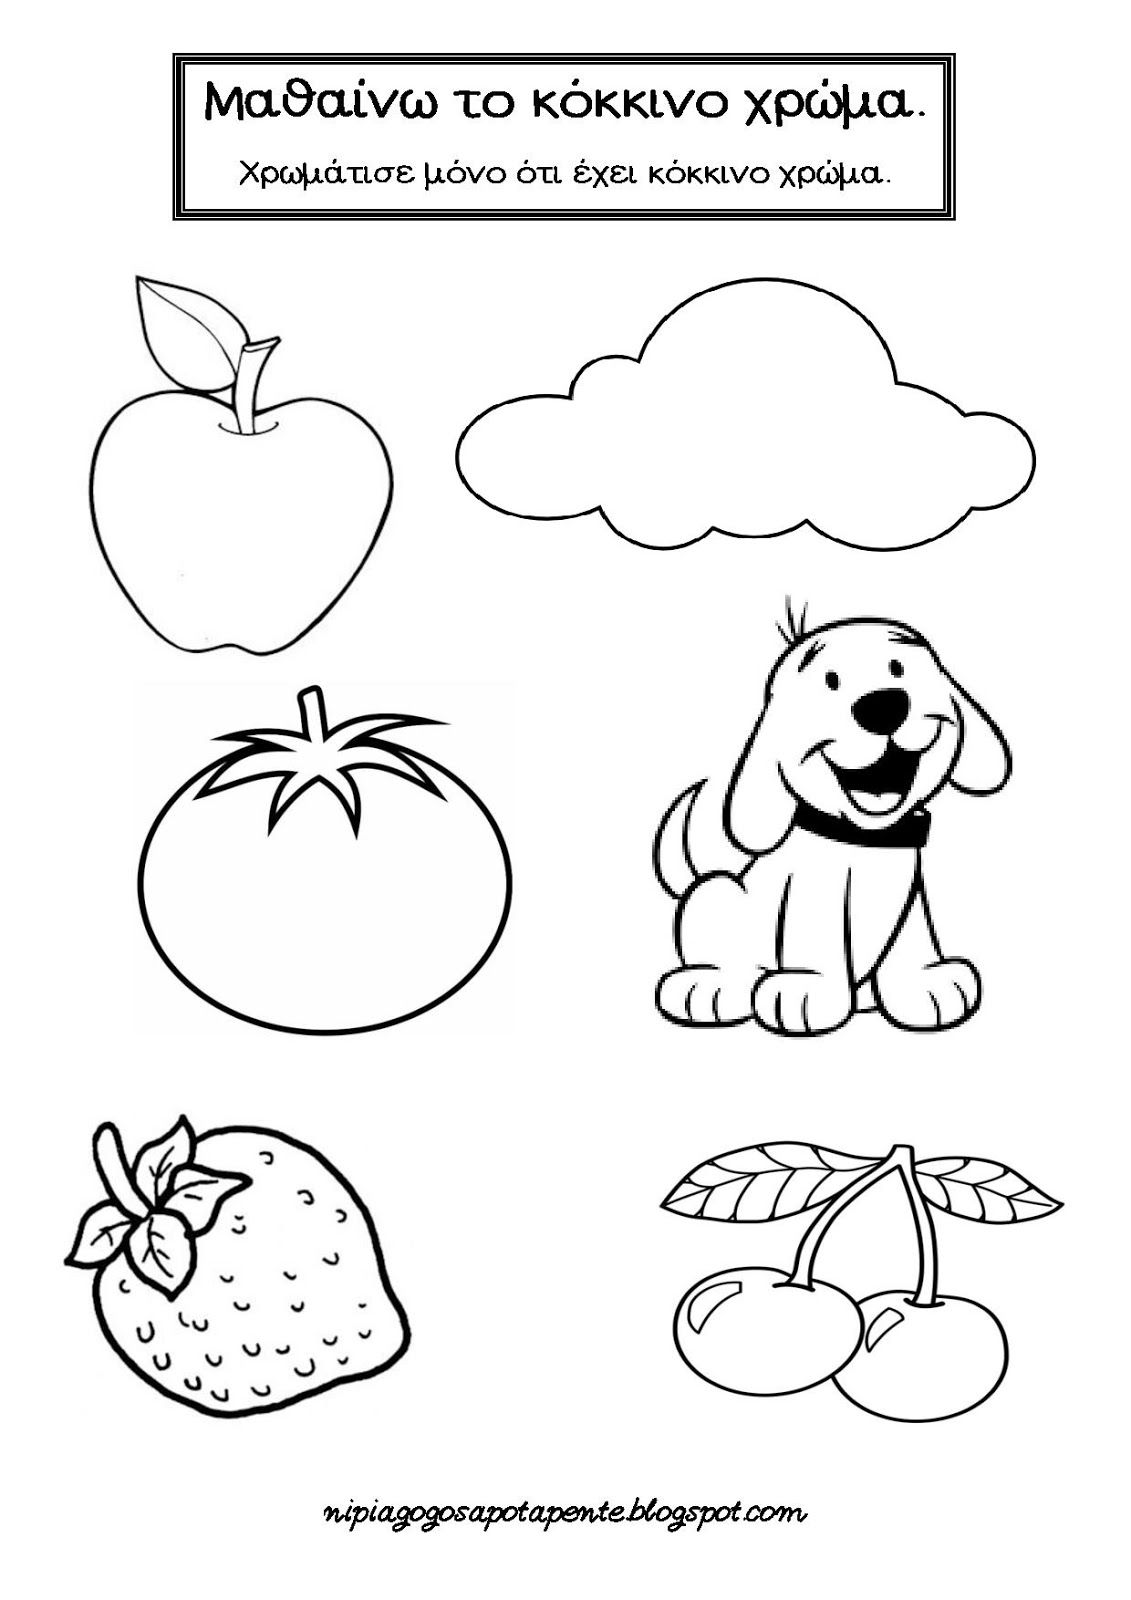 Coloring activities speech therapy -  Math Activitiesspeech Therapyspecial Educationmathsstencilcoloring